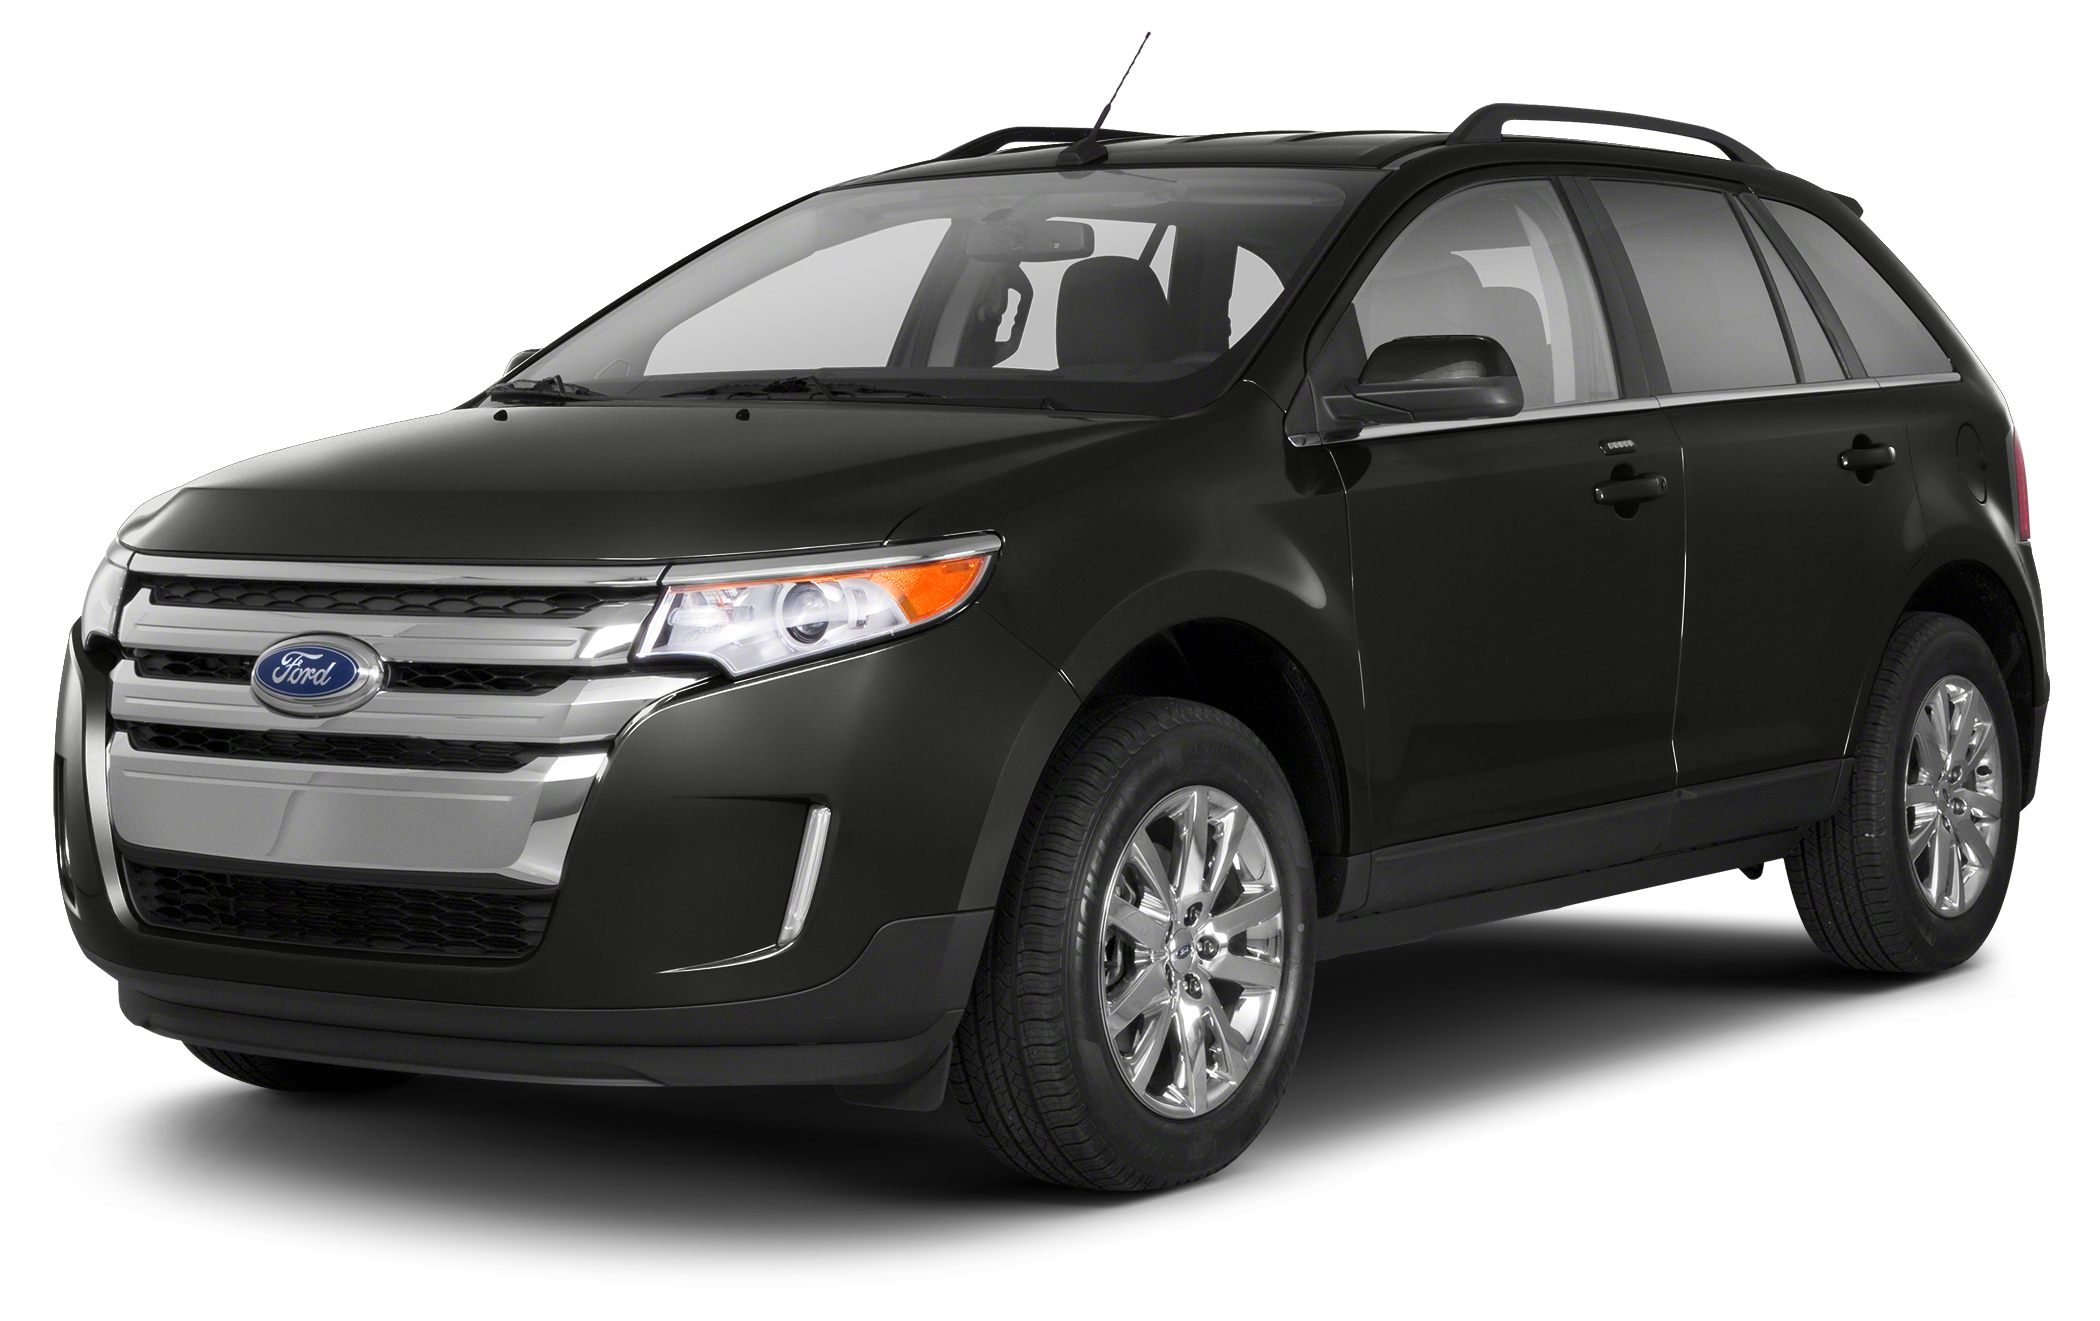 2013 Ford Edge SEL EPA 27 MPG Hwy19 MPG City Extra Clean SEL trim CD Player Onboard Communica